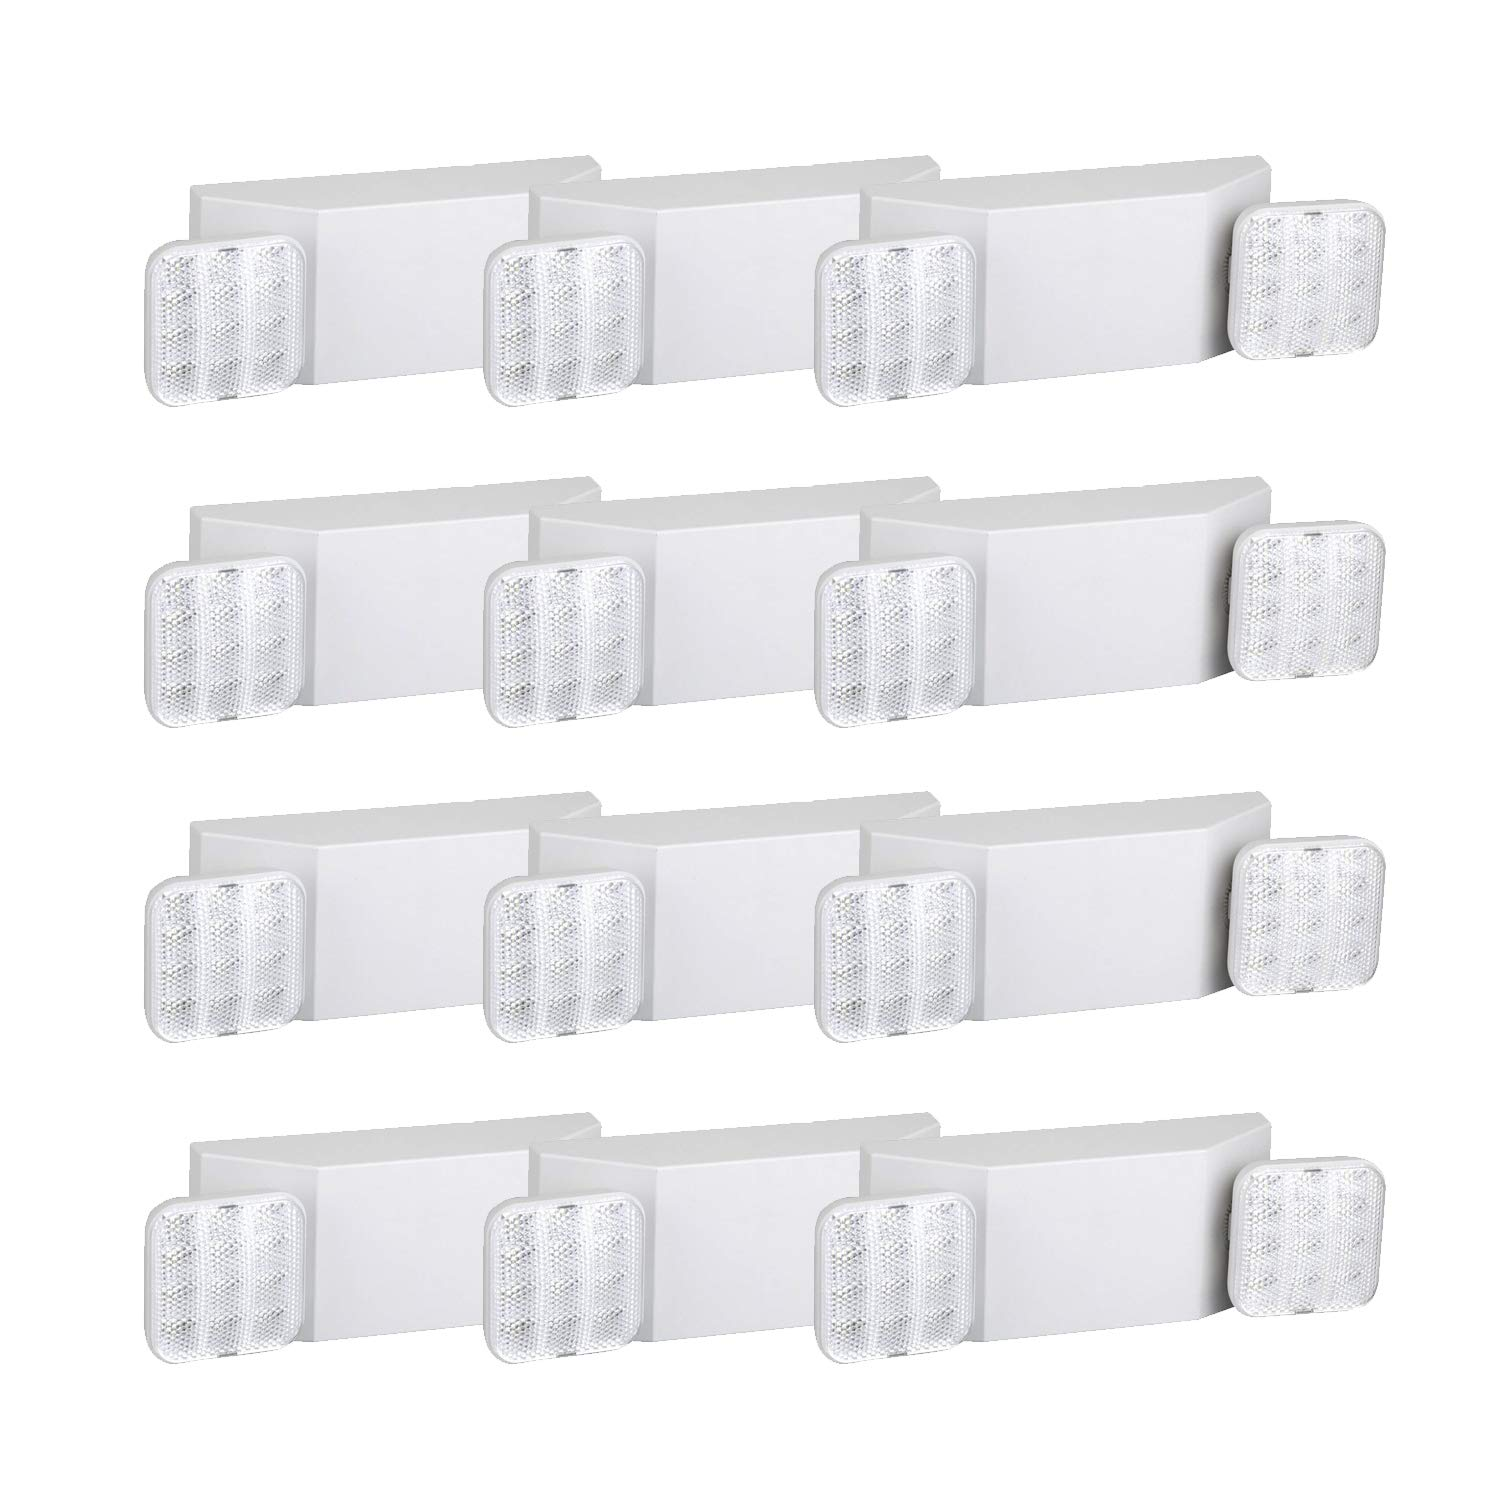 HYD-Parts 12 Packs Two Head Emergency Light - UL Certified - Hardwired LED Fire Emergency Lighting (Square)